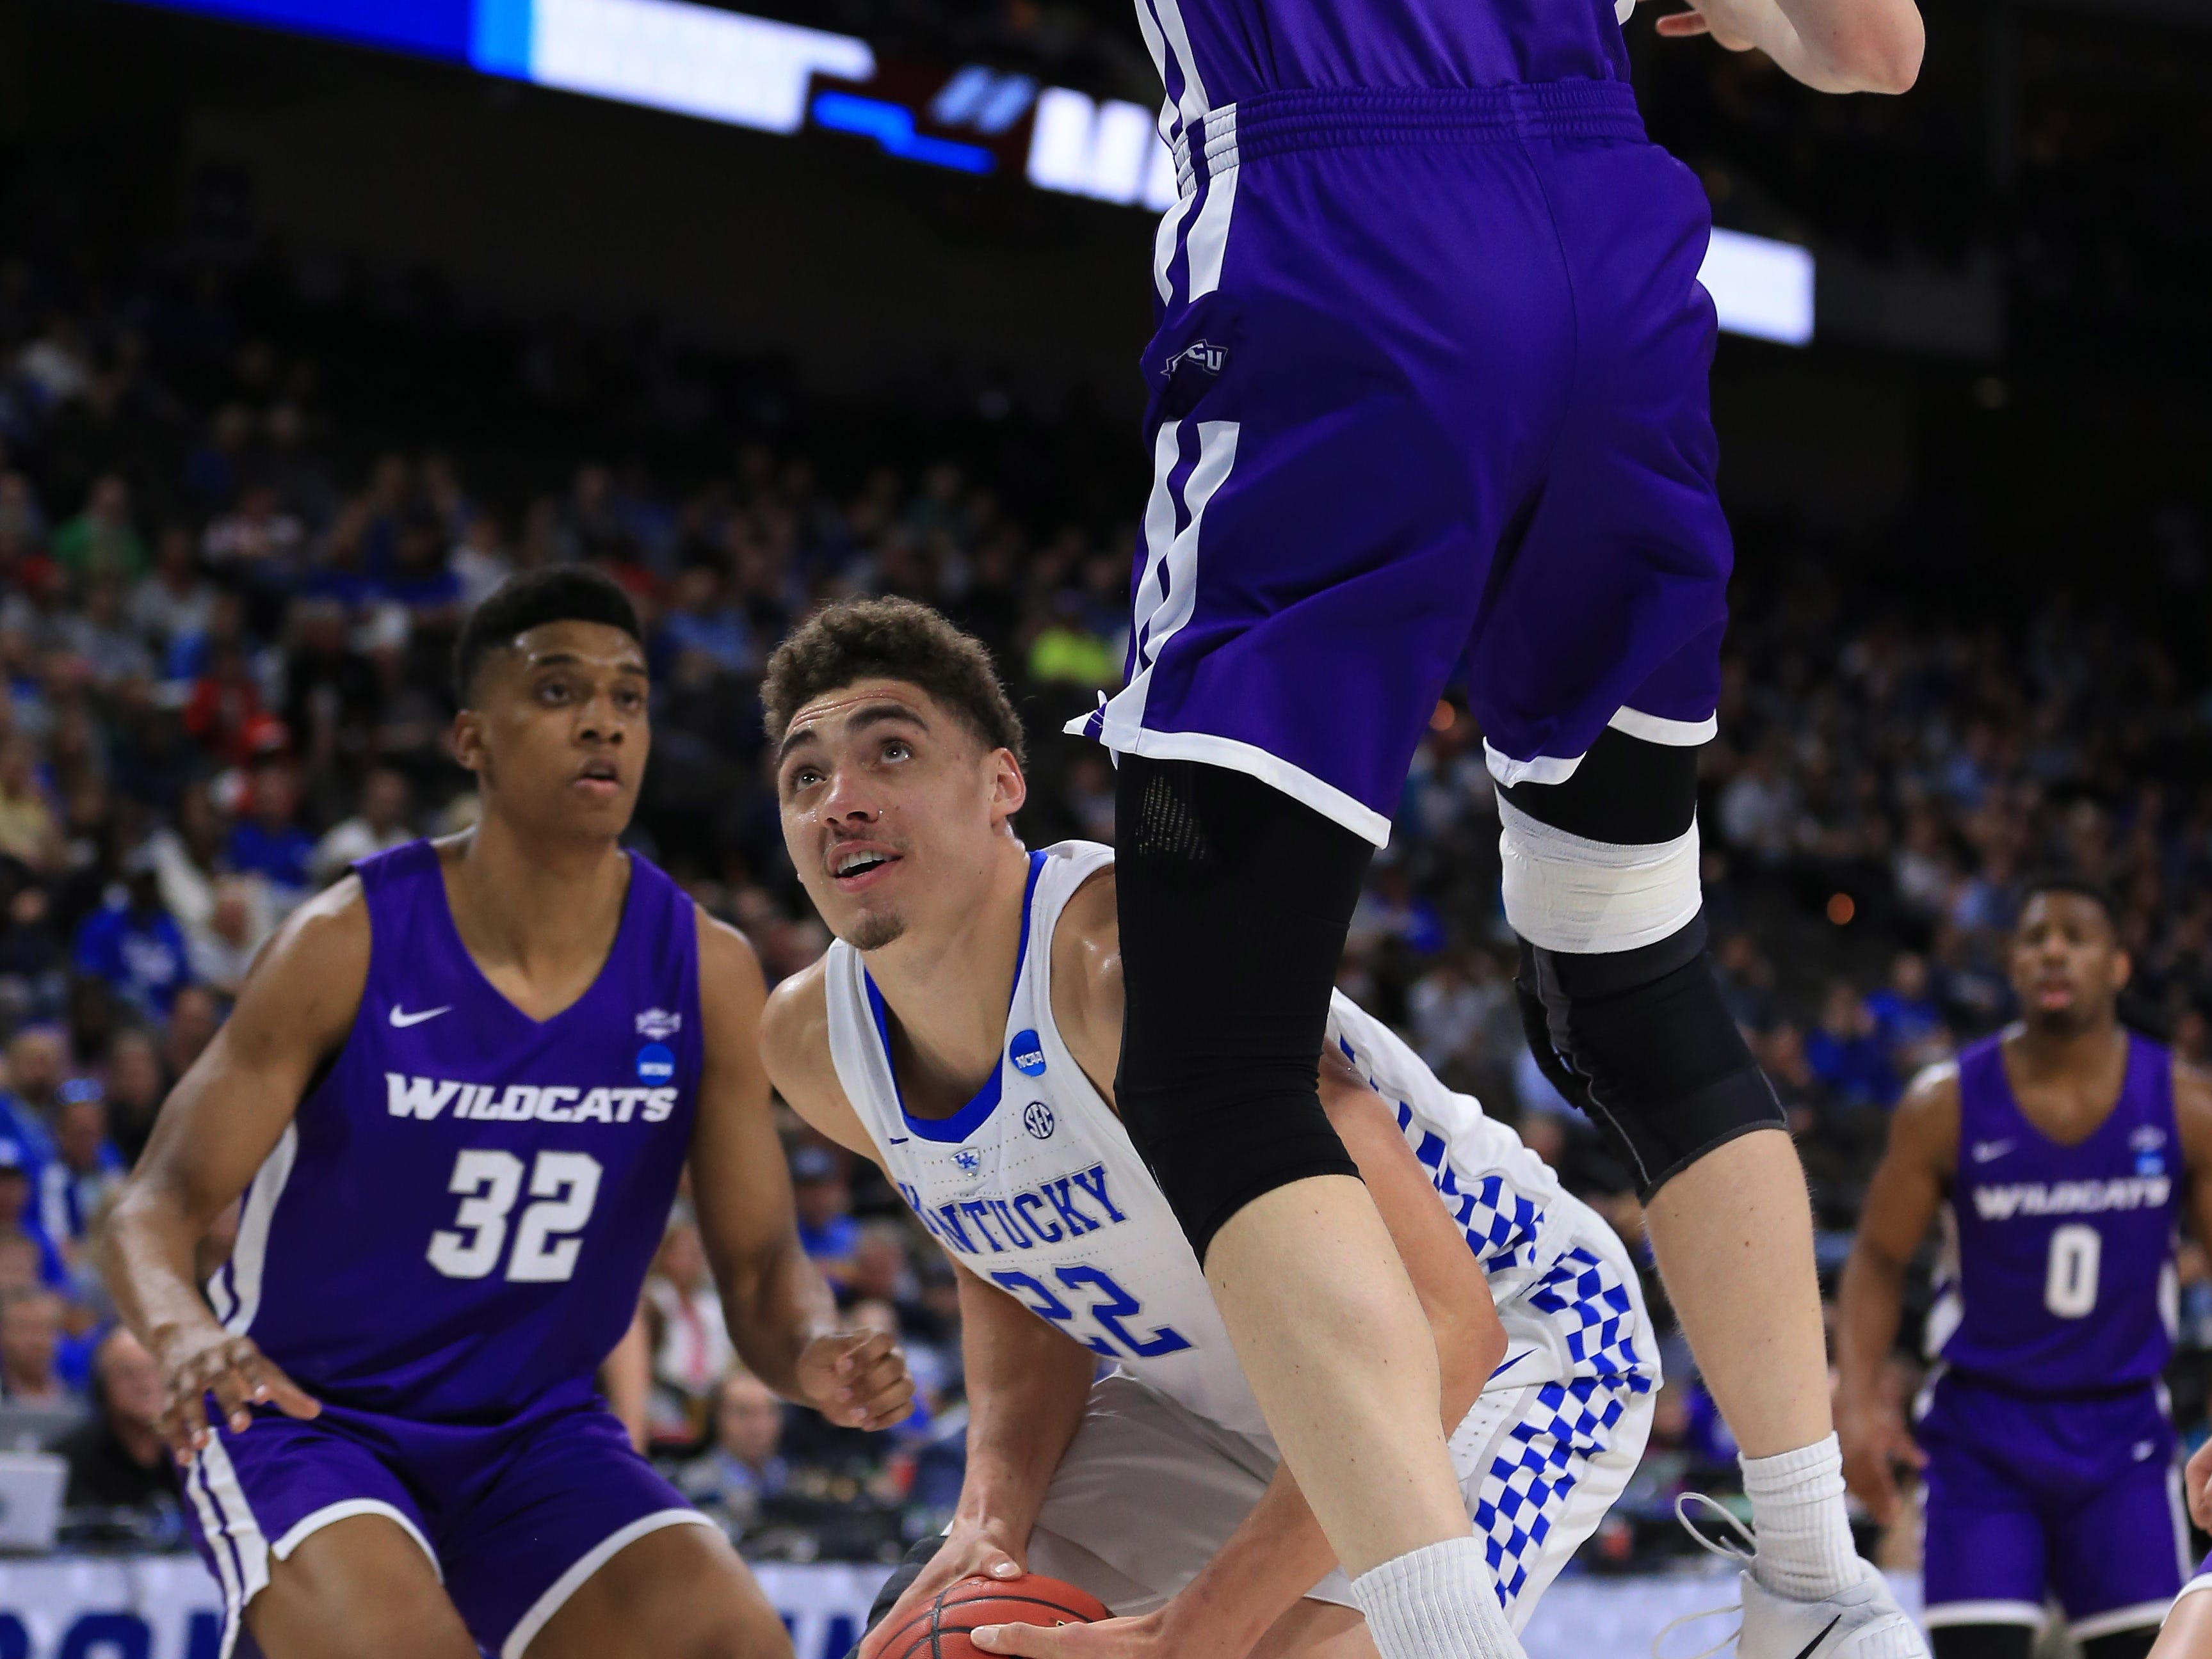 Mar 21, 2019; Jacksonville, FL, USA; Kentucky Wildcats forward Reid Travis (22) controls the ball between Abilene Christian Wildcats forward Joe Pleasant (32) and Wildcats center Kolton Kohl (34) during the first half in the first round of the 2019 NCAA Tournament at Jacksonville Veterans Memorial Arena. Mandatory Credit: Matt Stamey-USA TODAY Sports